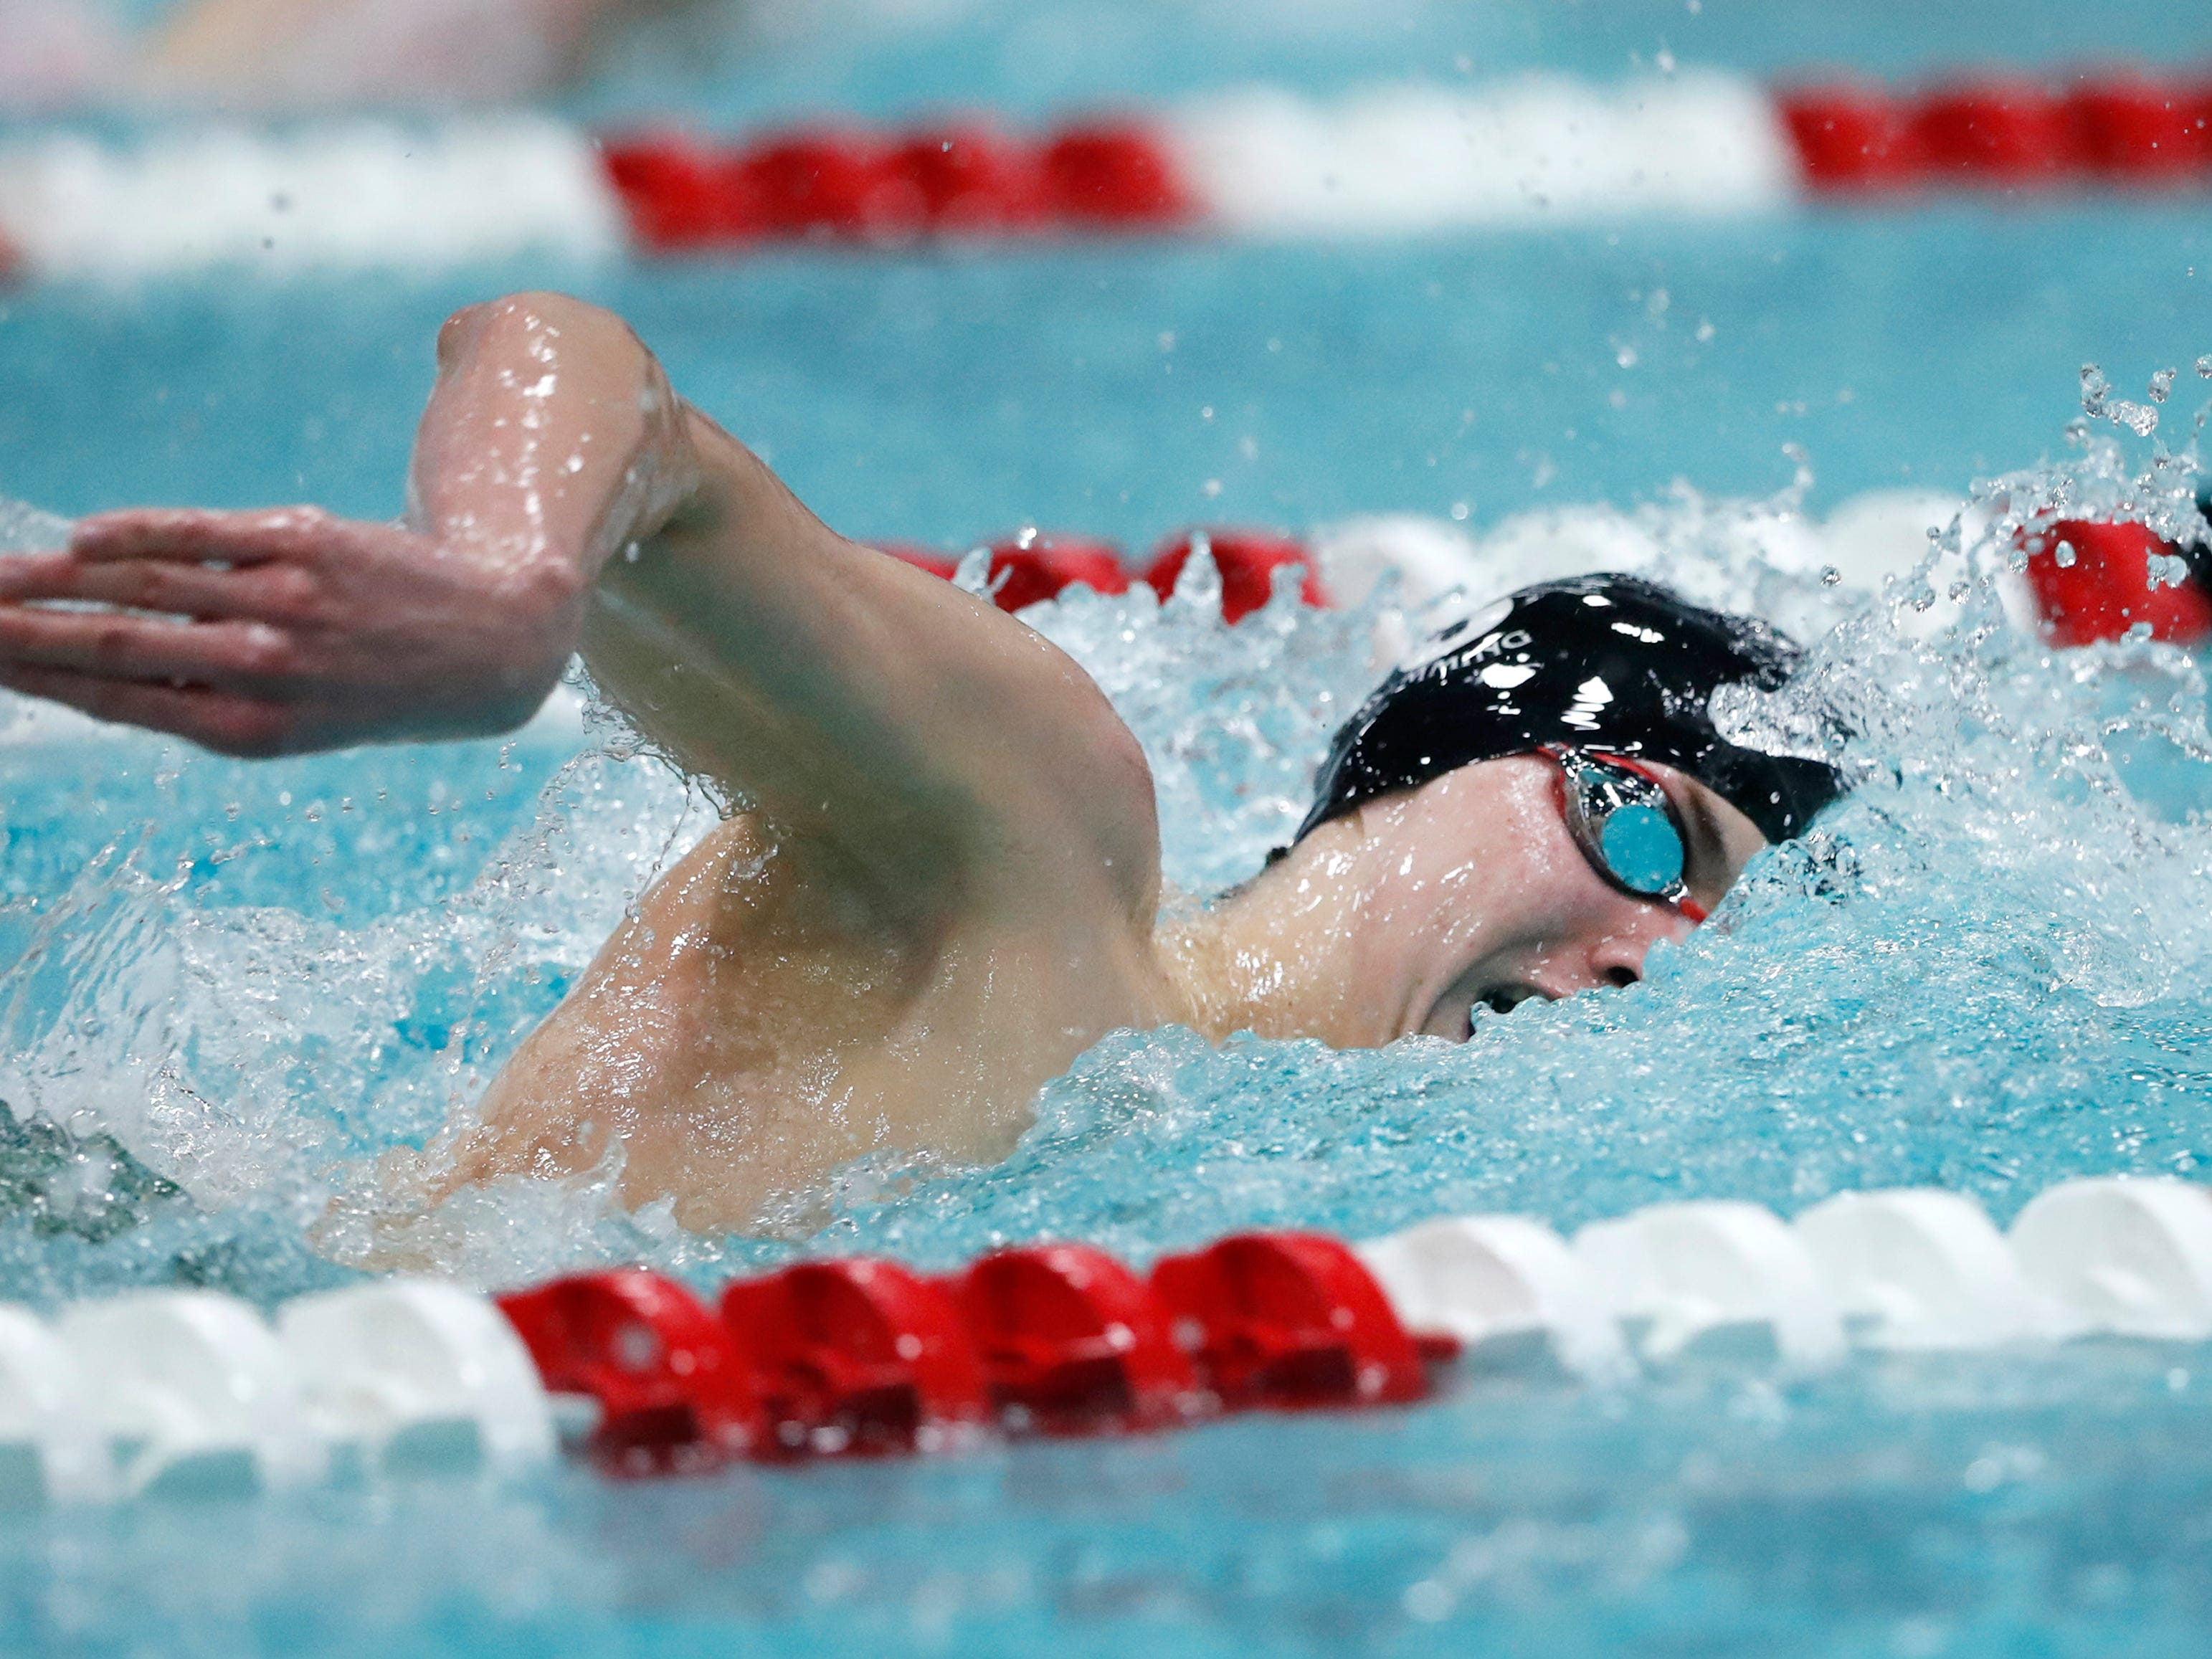 Shorewood's Evan Szablewski competes in the 200-yard freestyle during the Division 2 2019 State Boys Swimming and Diving Championships Friday, Feb. 15, 2019, at the UW Natatorium in Madison, Wis.